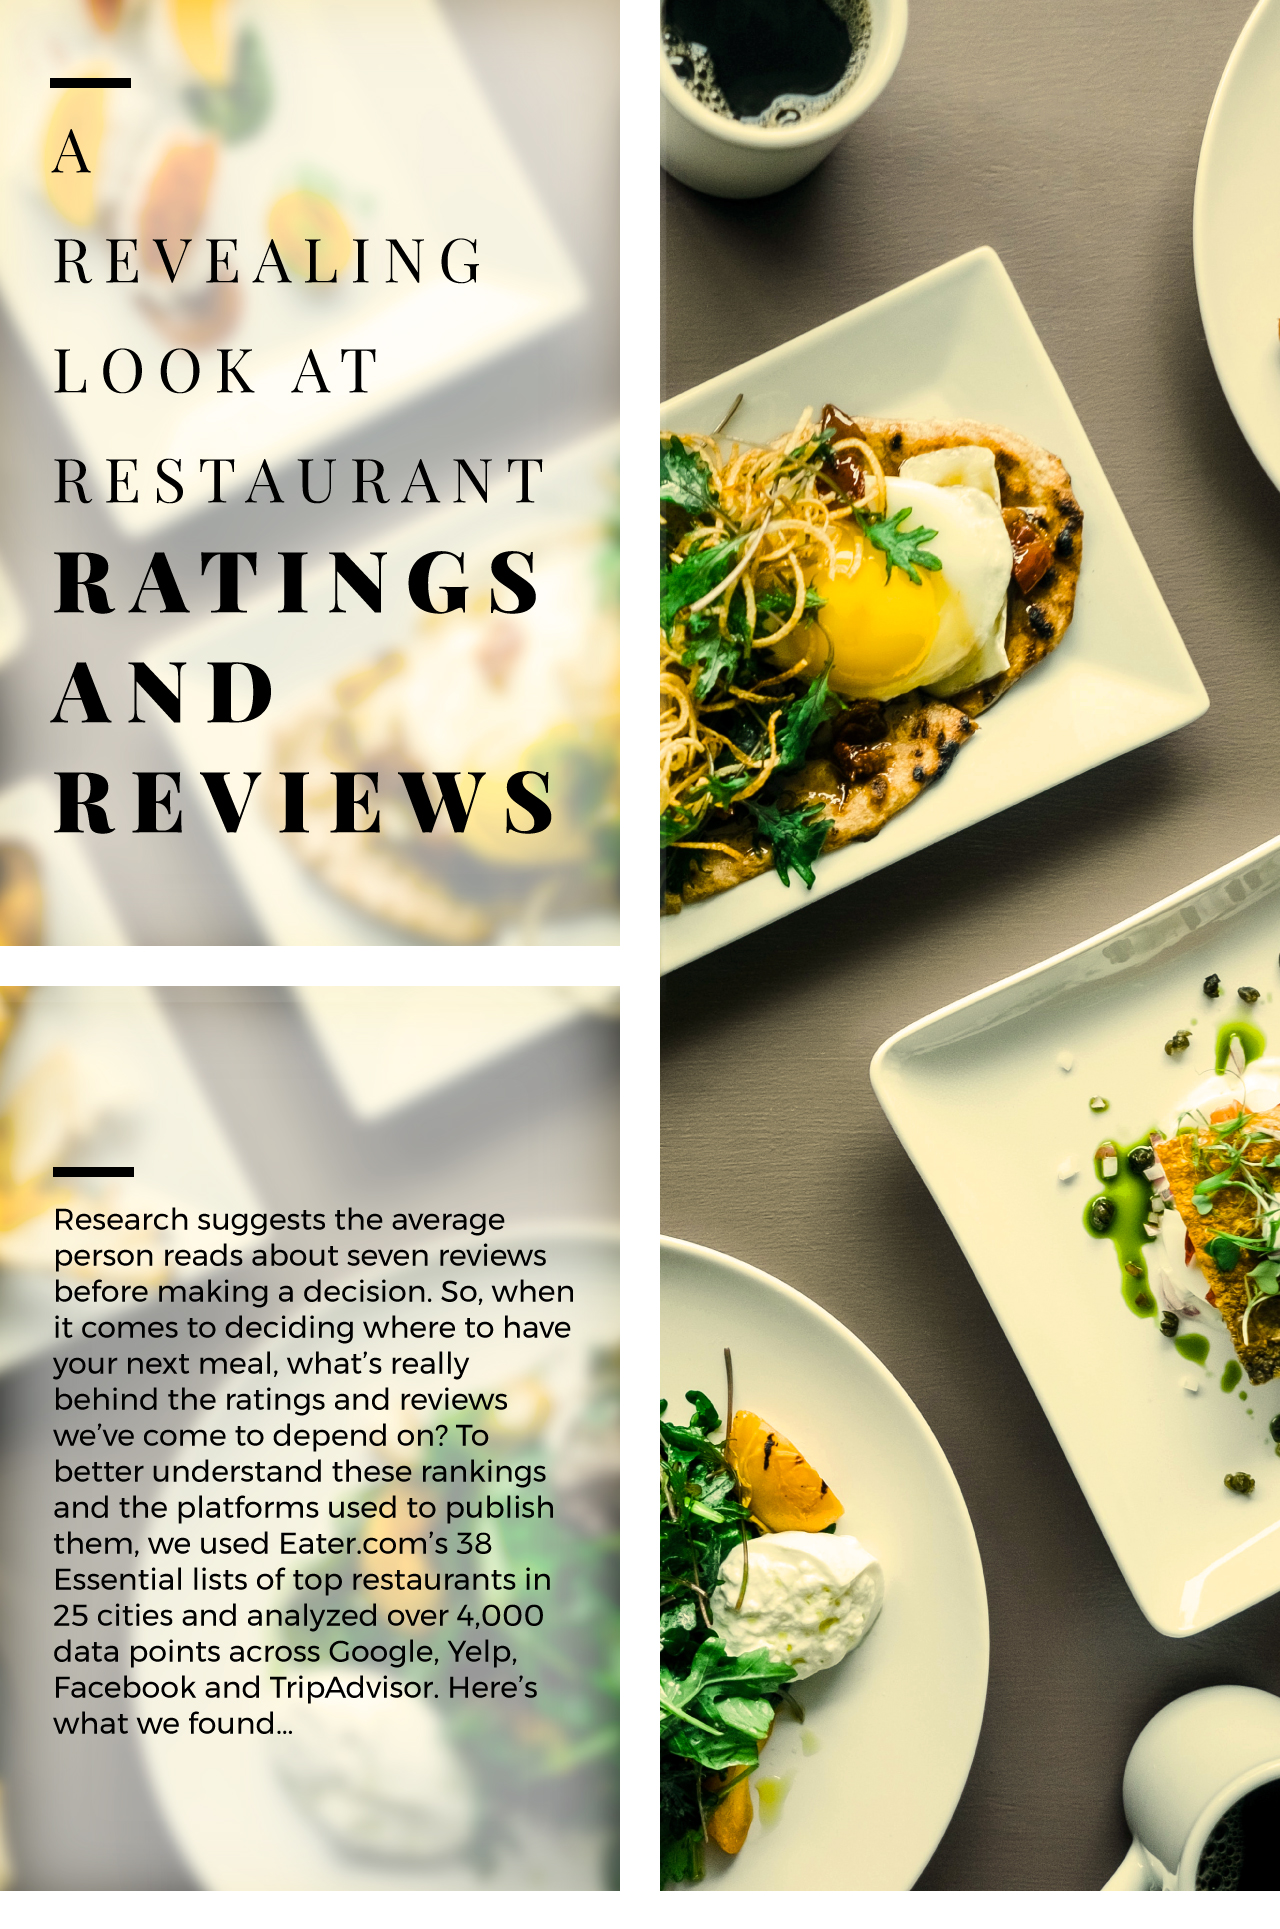 Restaurant Ratings and Reviews Image